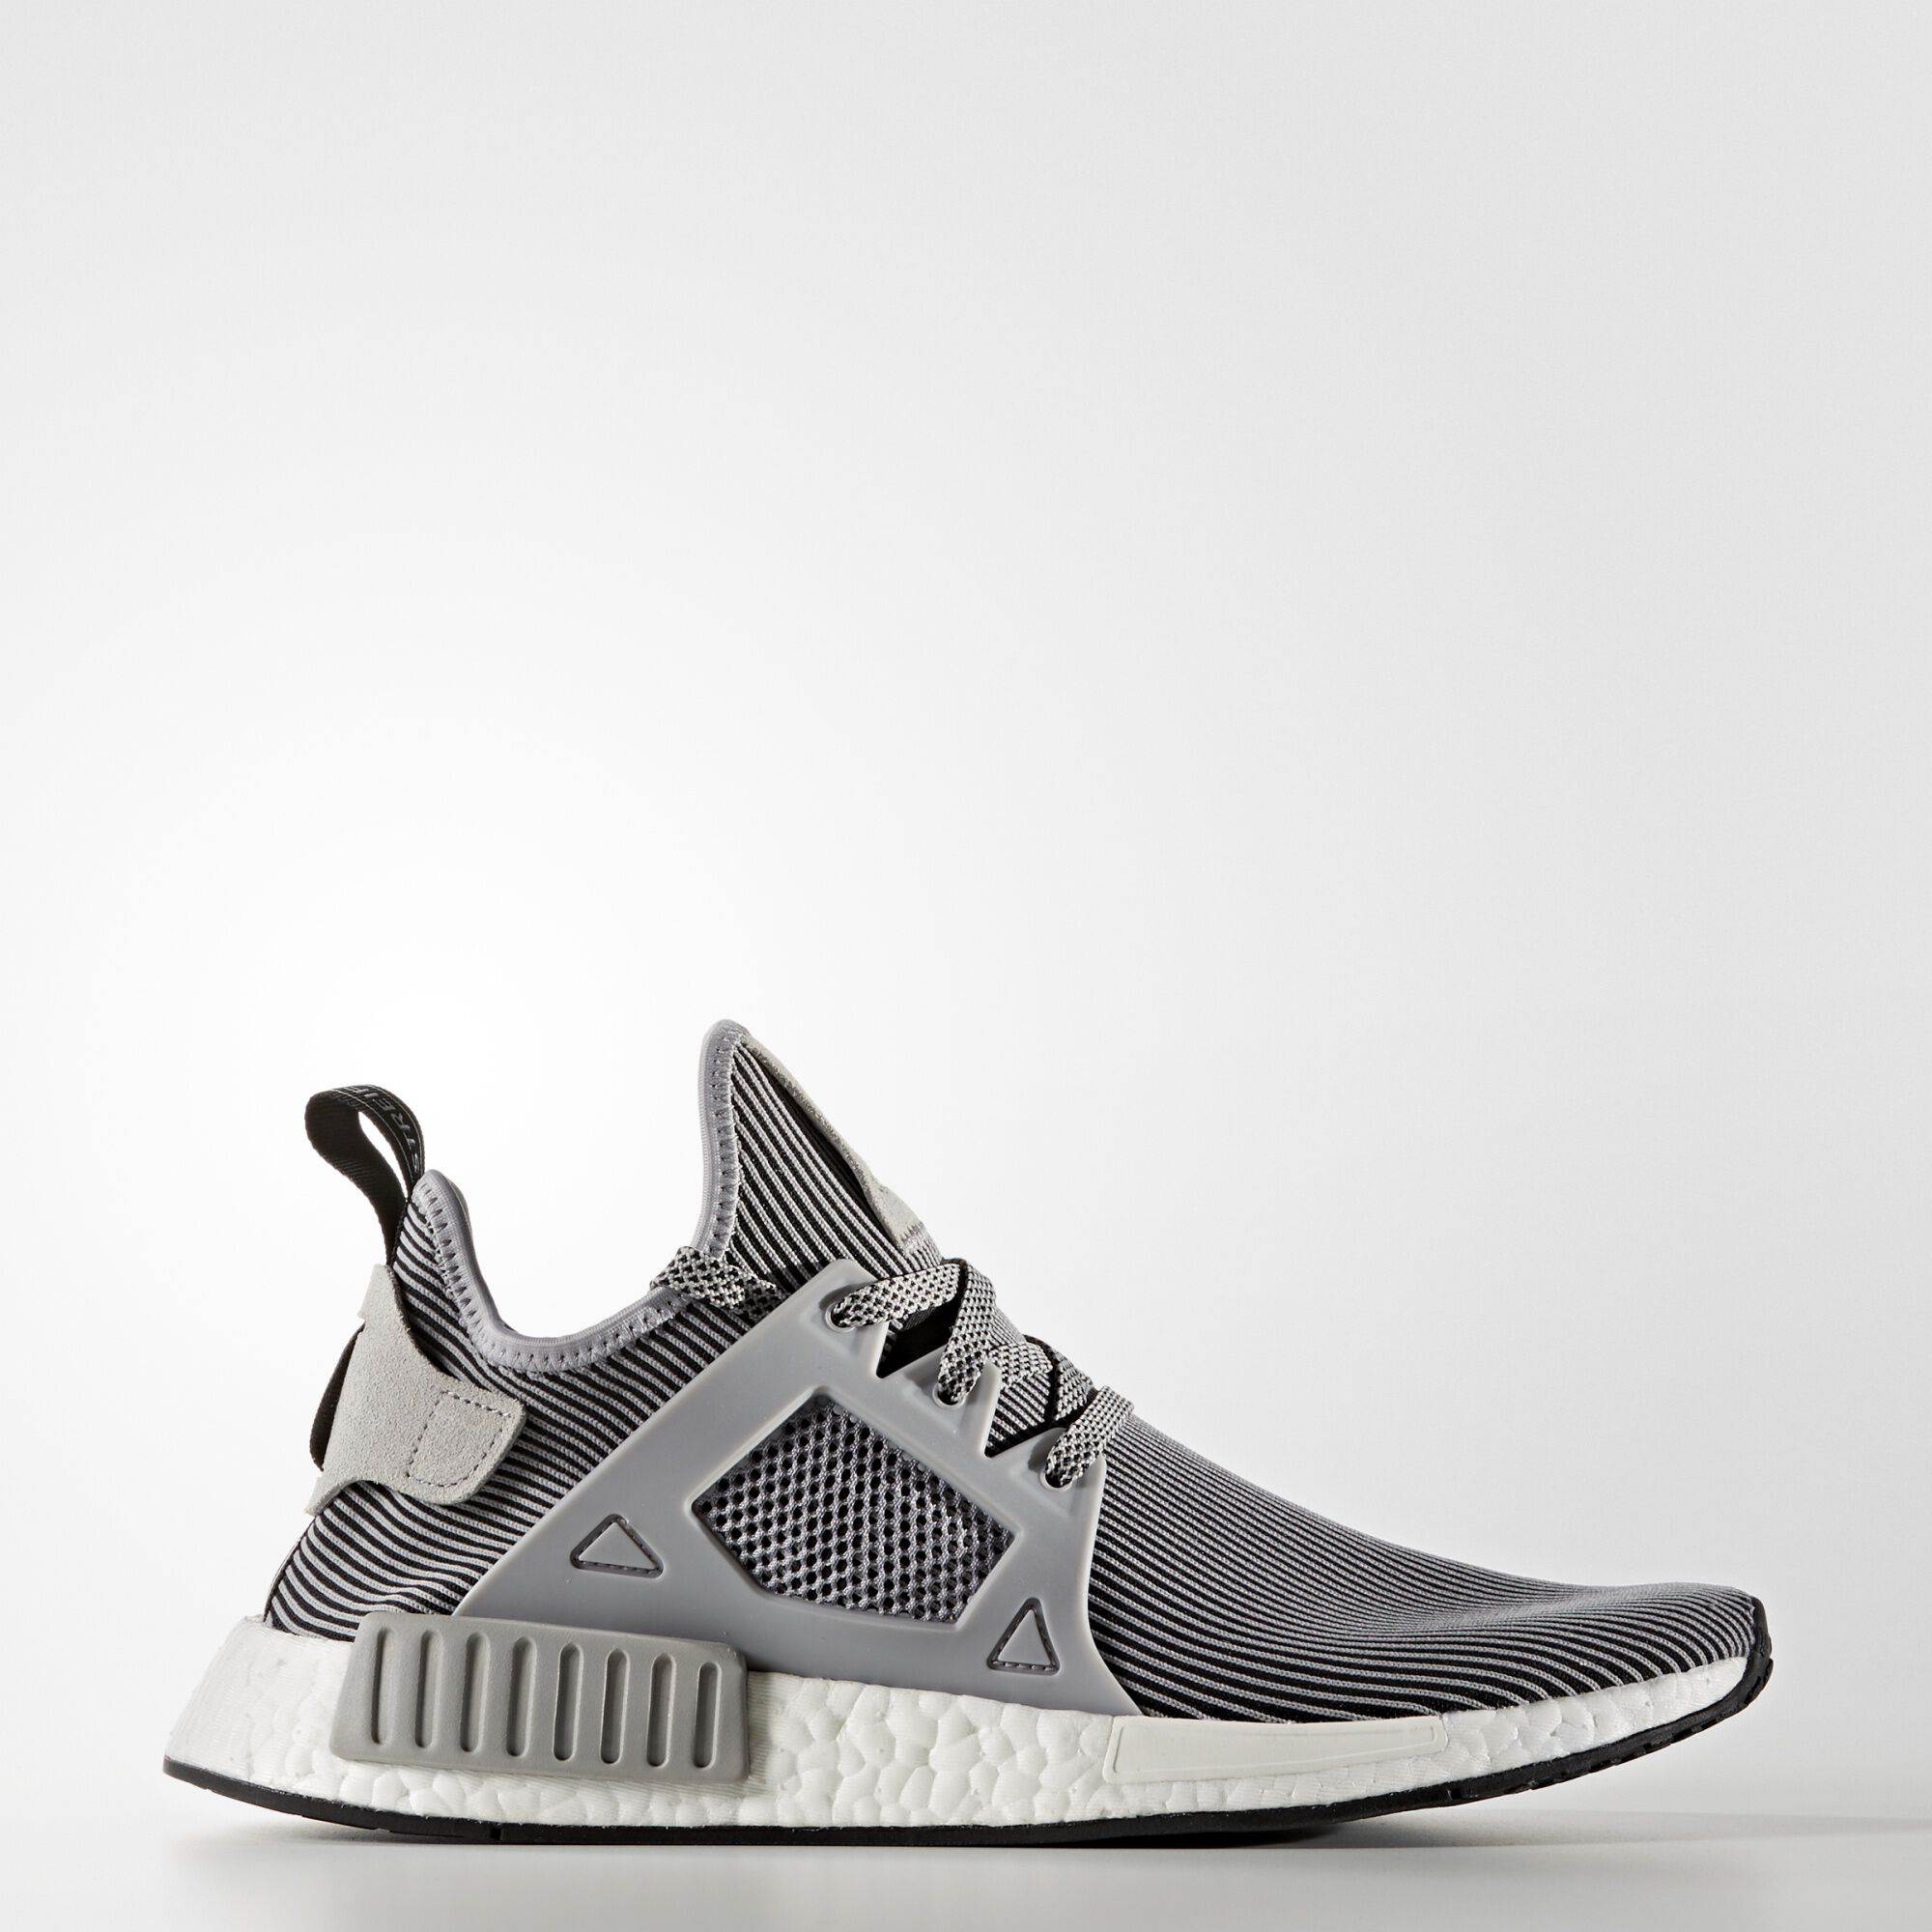 hot sale online 9563e f87a7 frrsjb adidas NMD Shoes - R1, R2, XR1 NMDs and More  adidas US